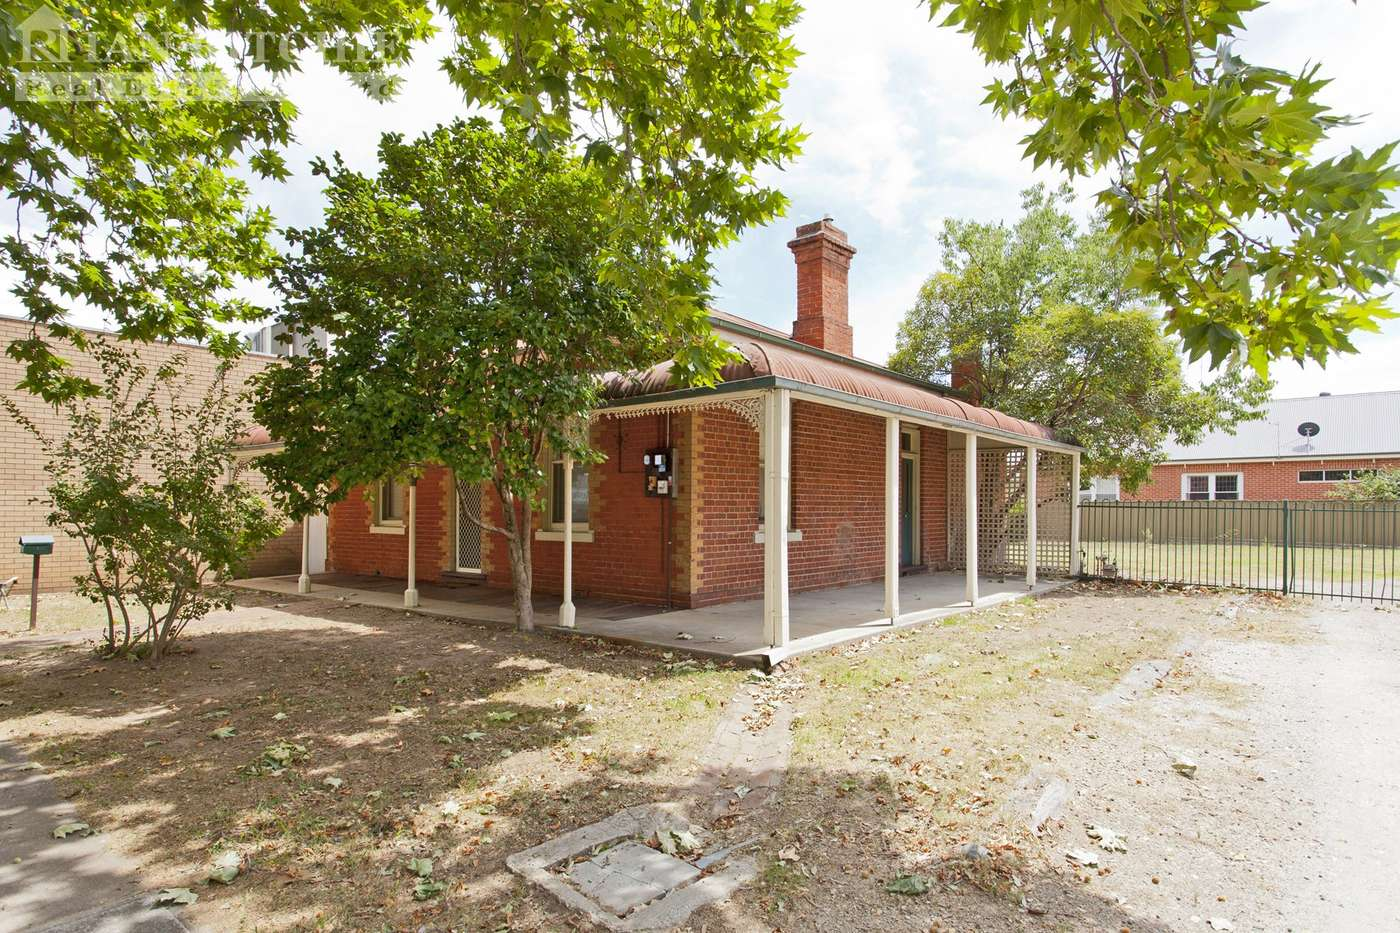 Main view of Homely house listing, 436 Swift Street, Albury, NSW 2640